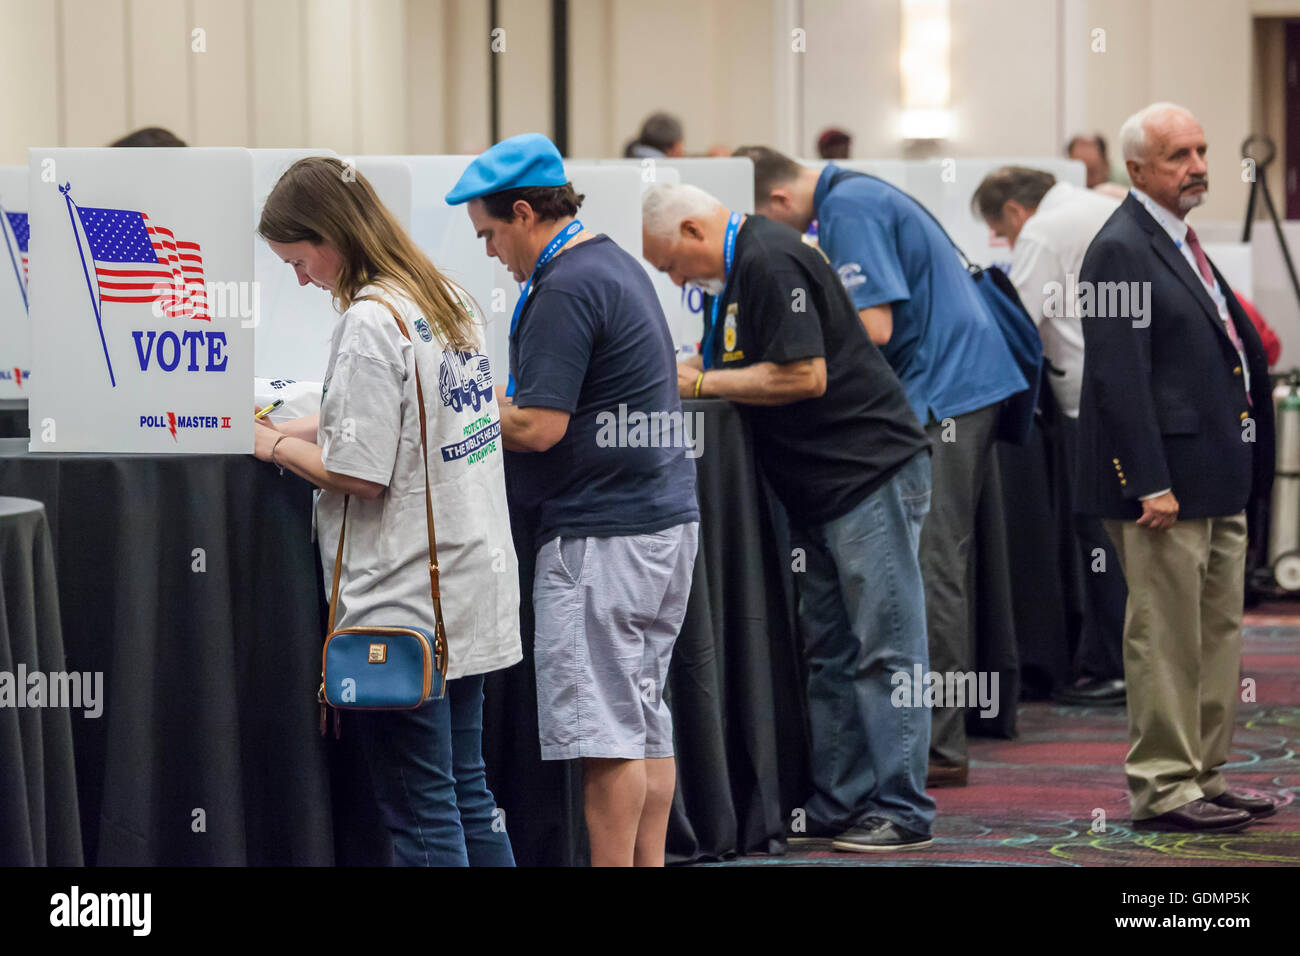 Las Vegas, Nevada - Delegates to the Teamsters Union convention cast ballots in voting to nominate candidates for - Stock Image